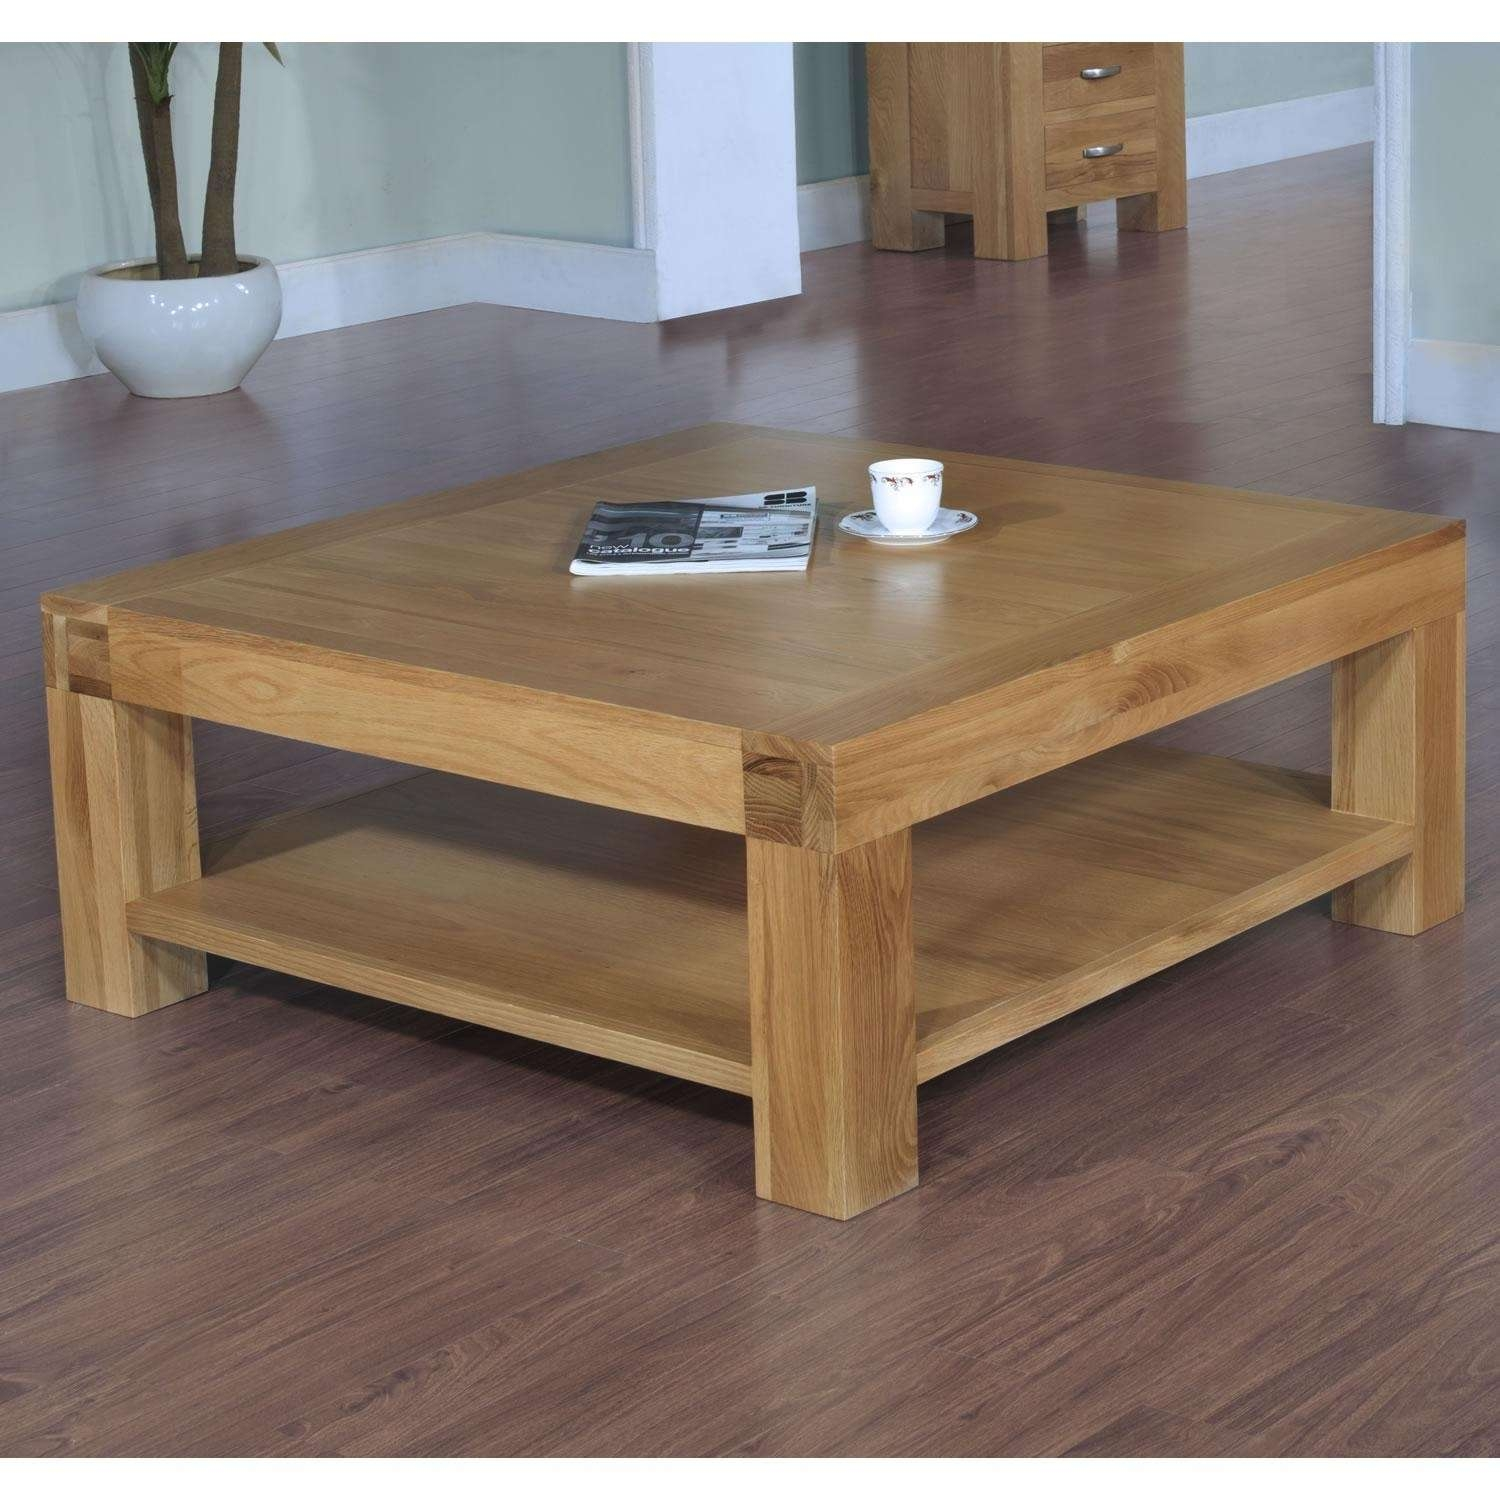 Coffee Tables : Large Oak Beam Coffee Table Coffee Addicts With Inside Recent Solid Oak Beam Coffee Table (View 3 of 20)